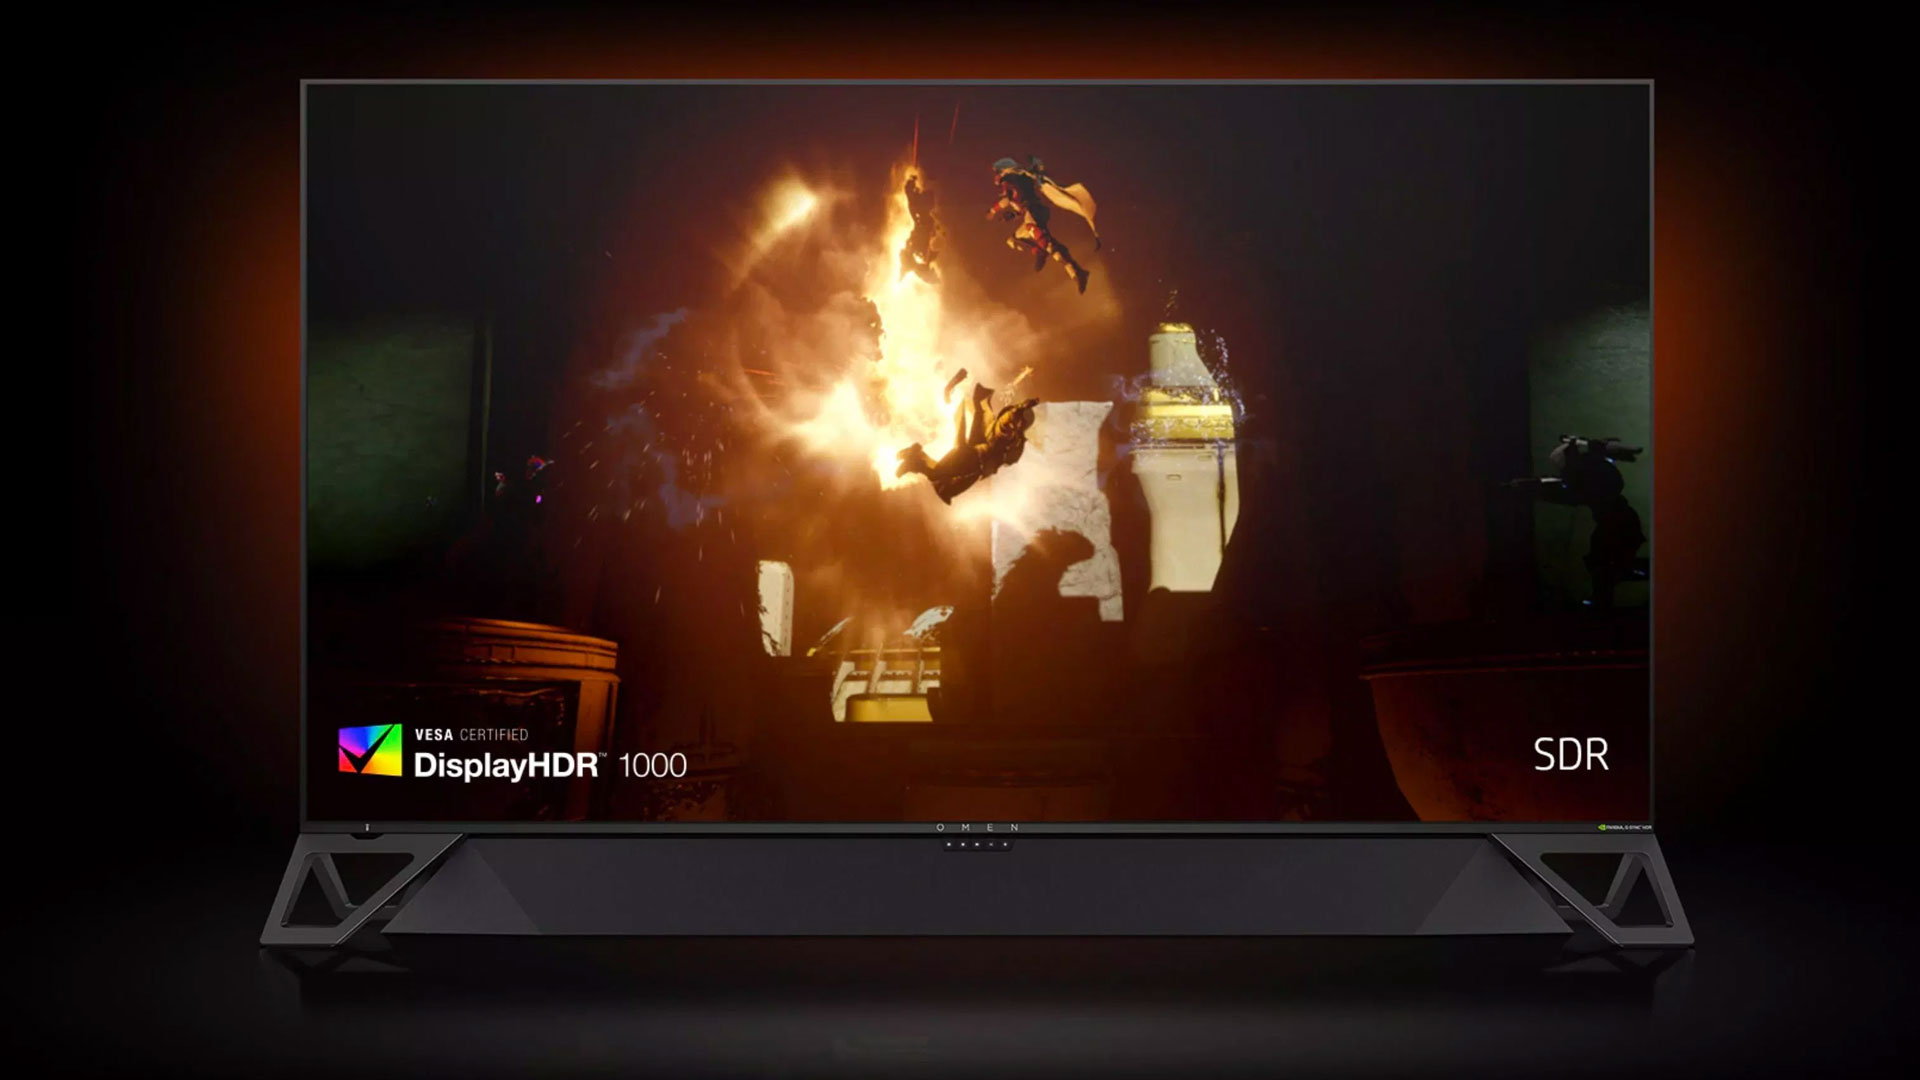 Your next TV could be the giant HP Omen X Emperium PC gaming monitor